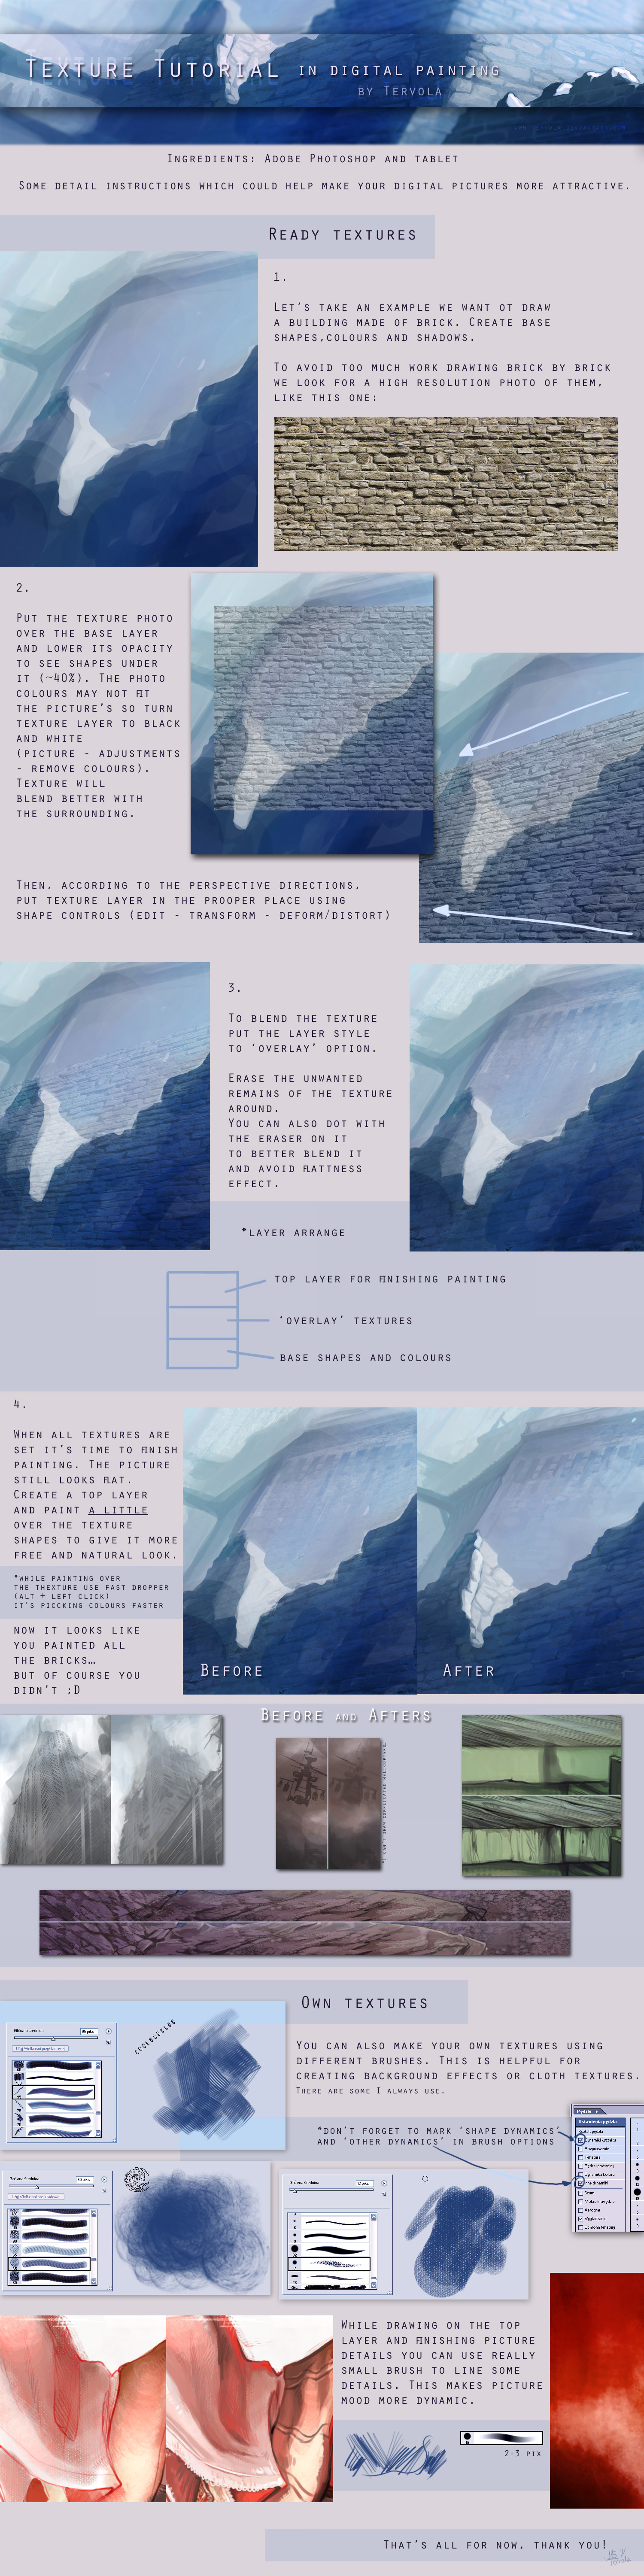 Texture tutorial by Tervola